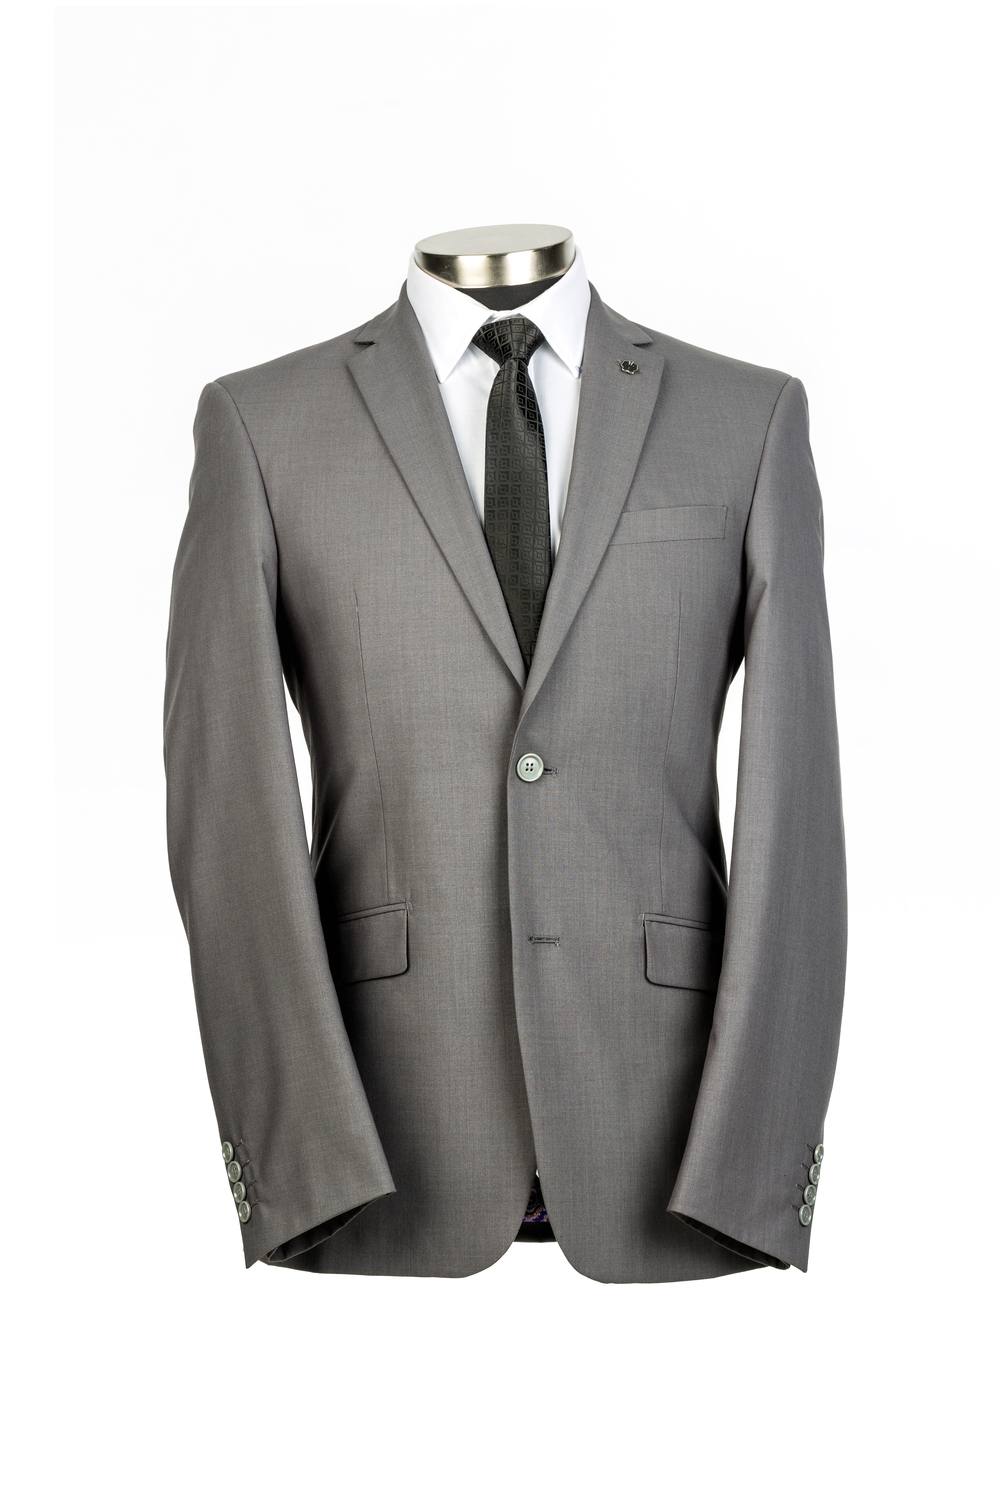 Deniro Grey Jacket